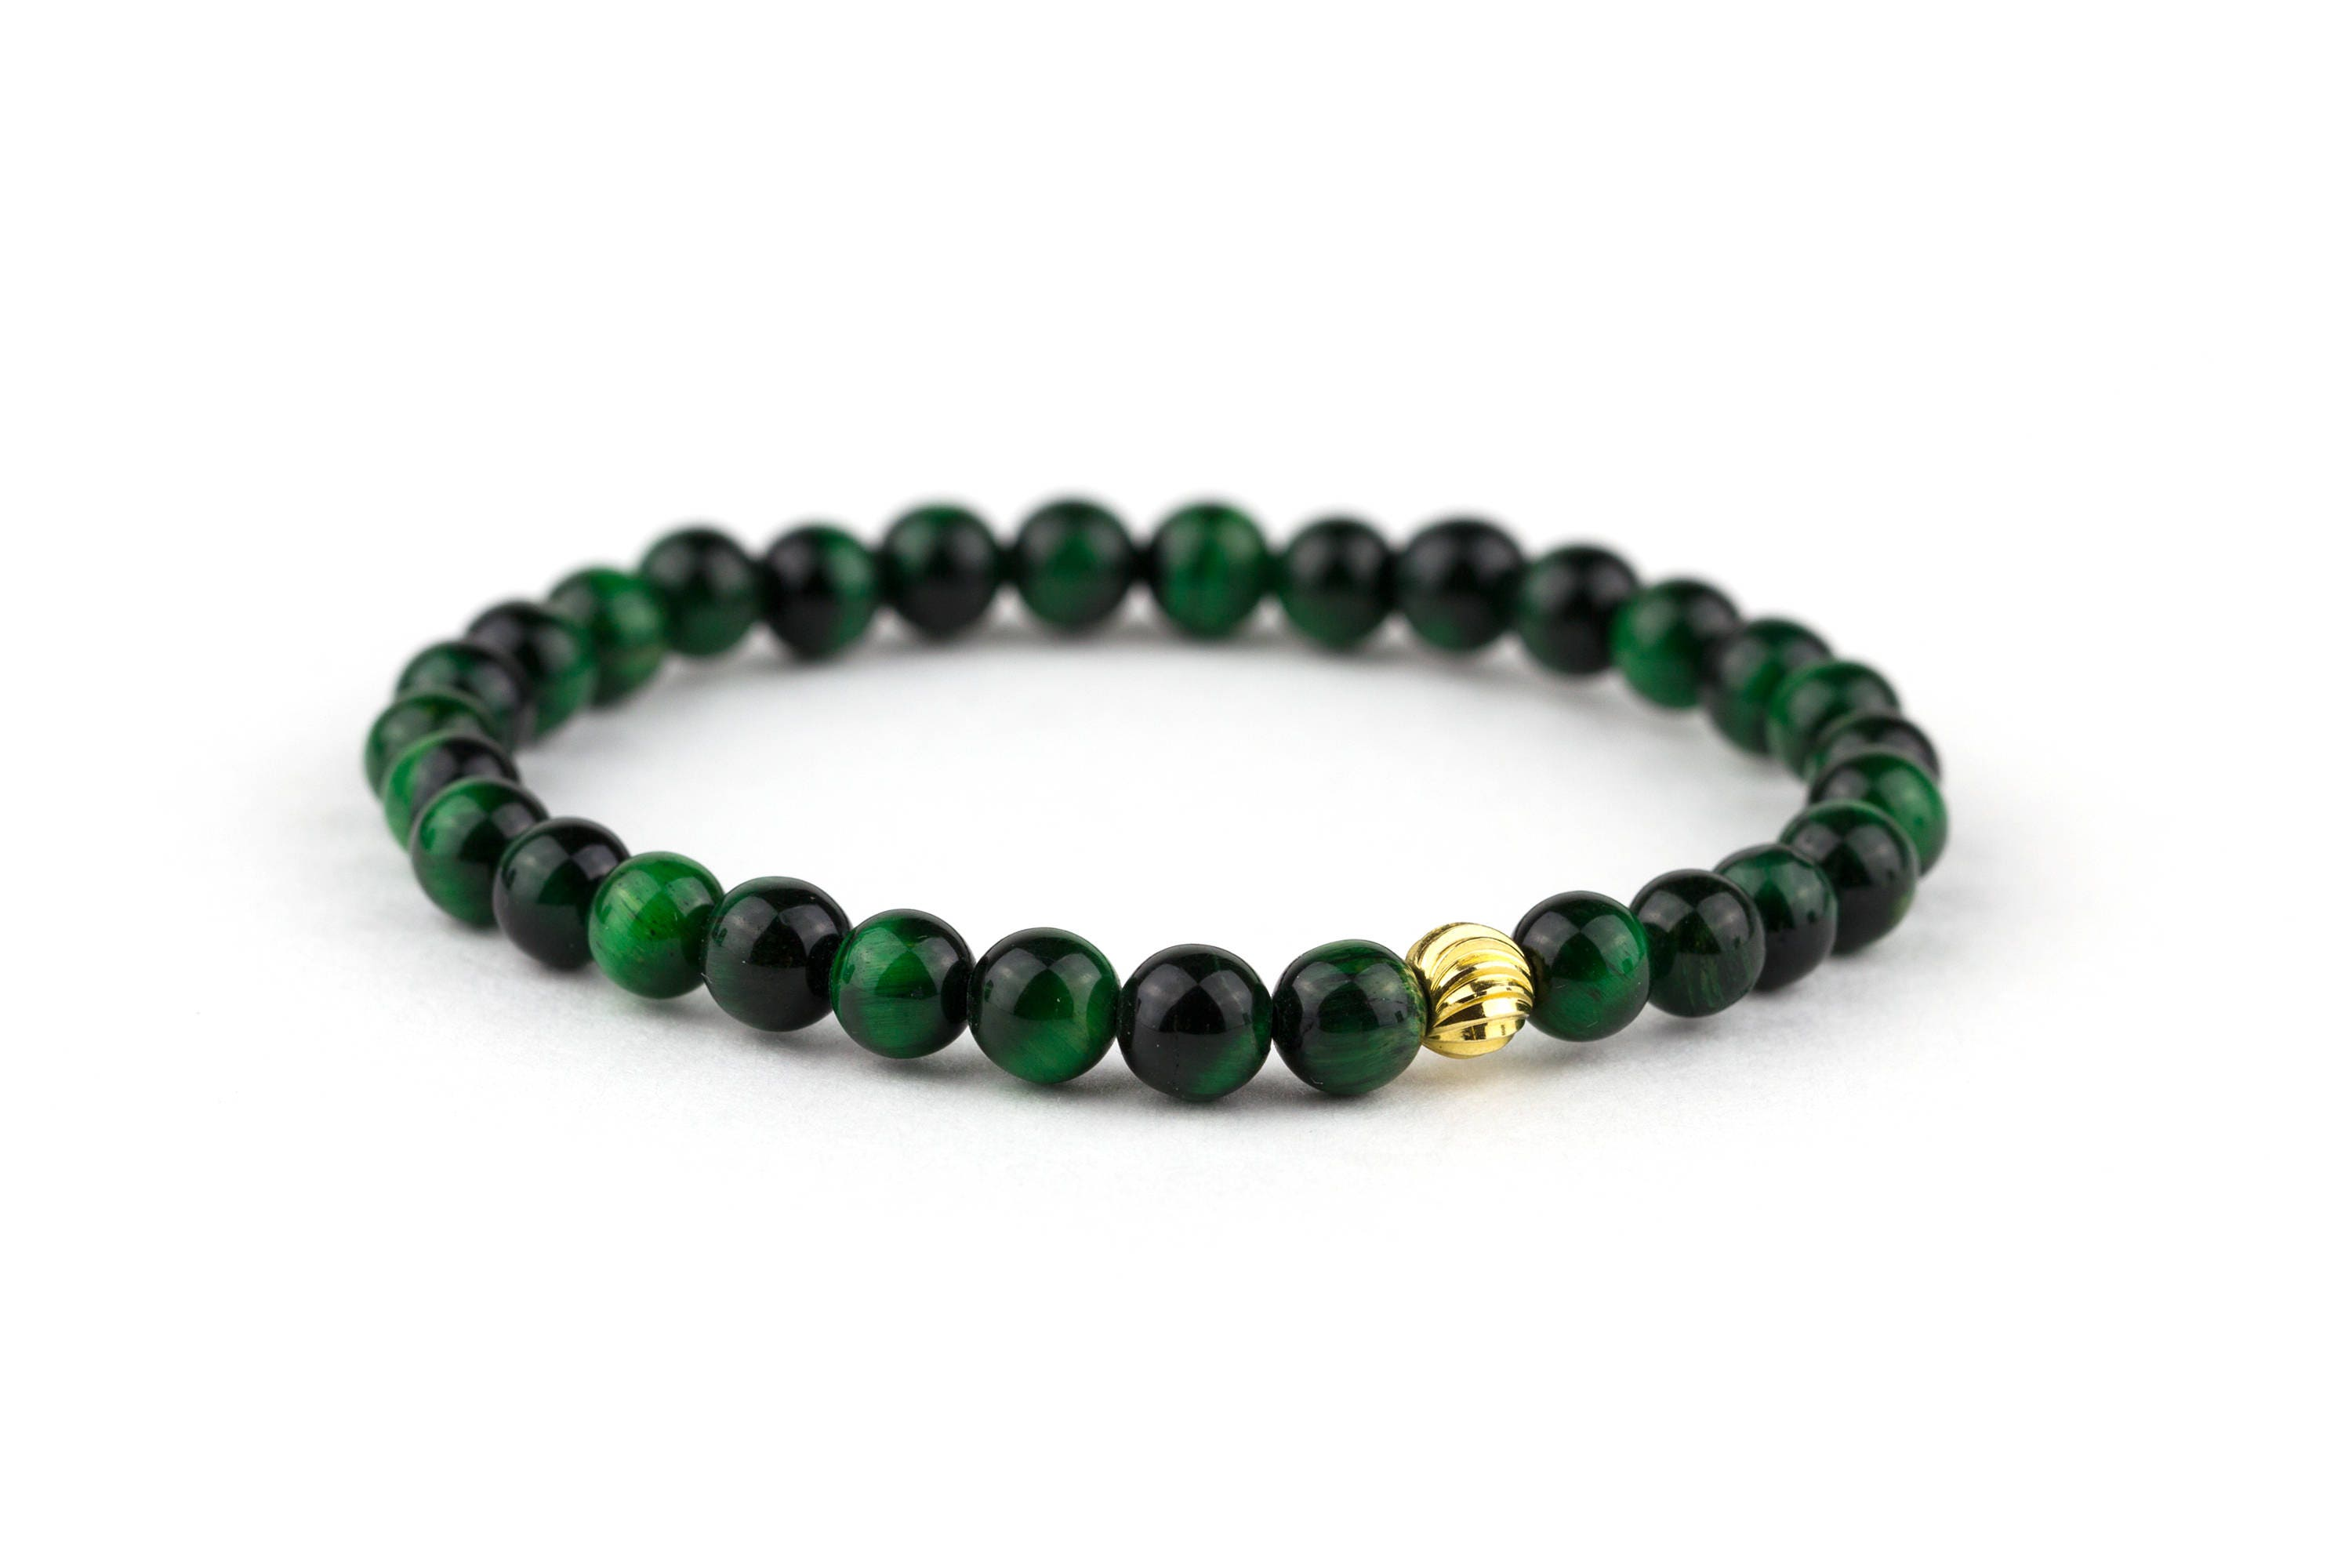 claude bracelet green stone product image jean shop rack nordstrom of emperor